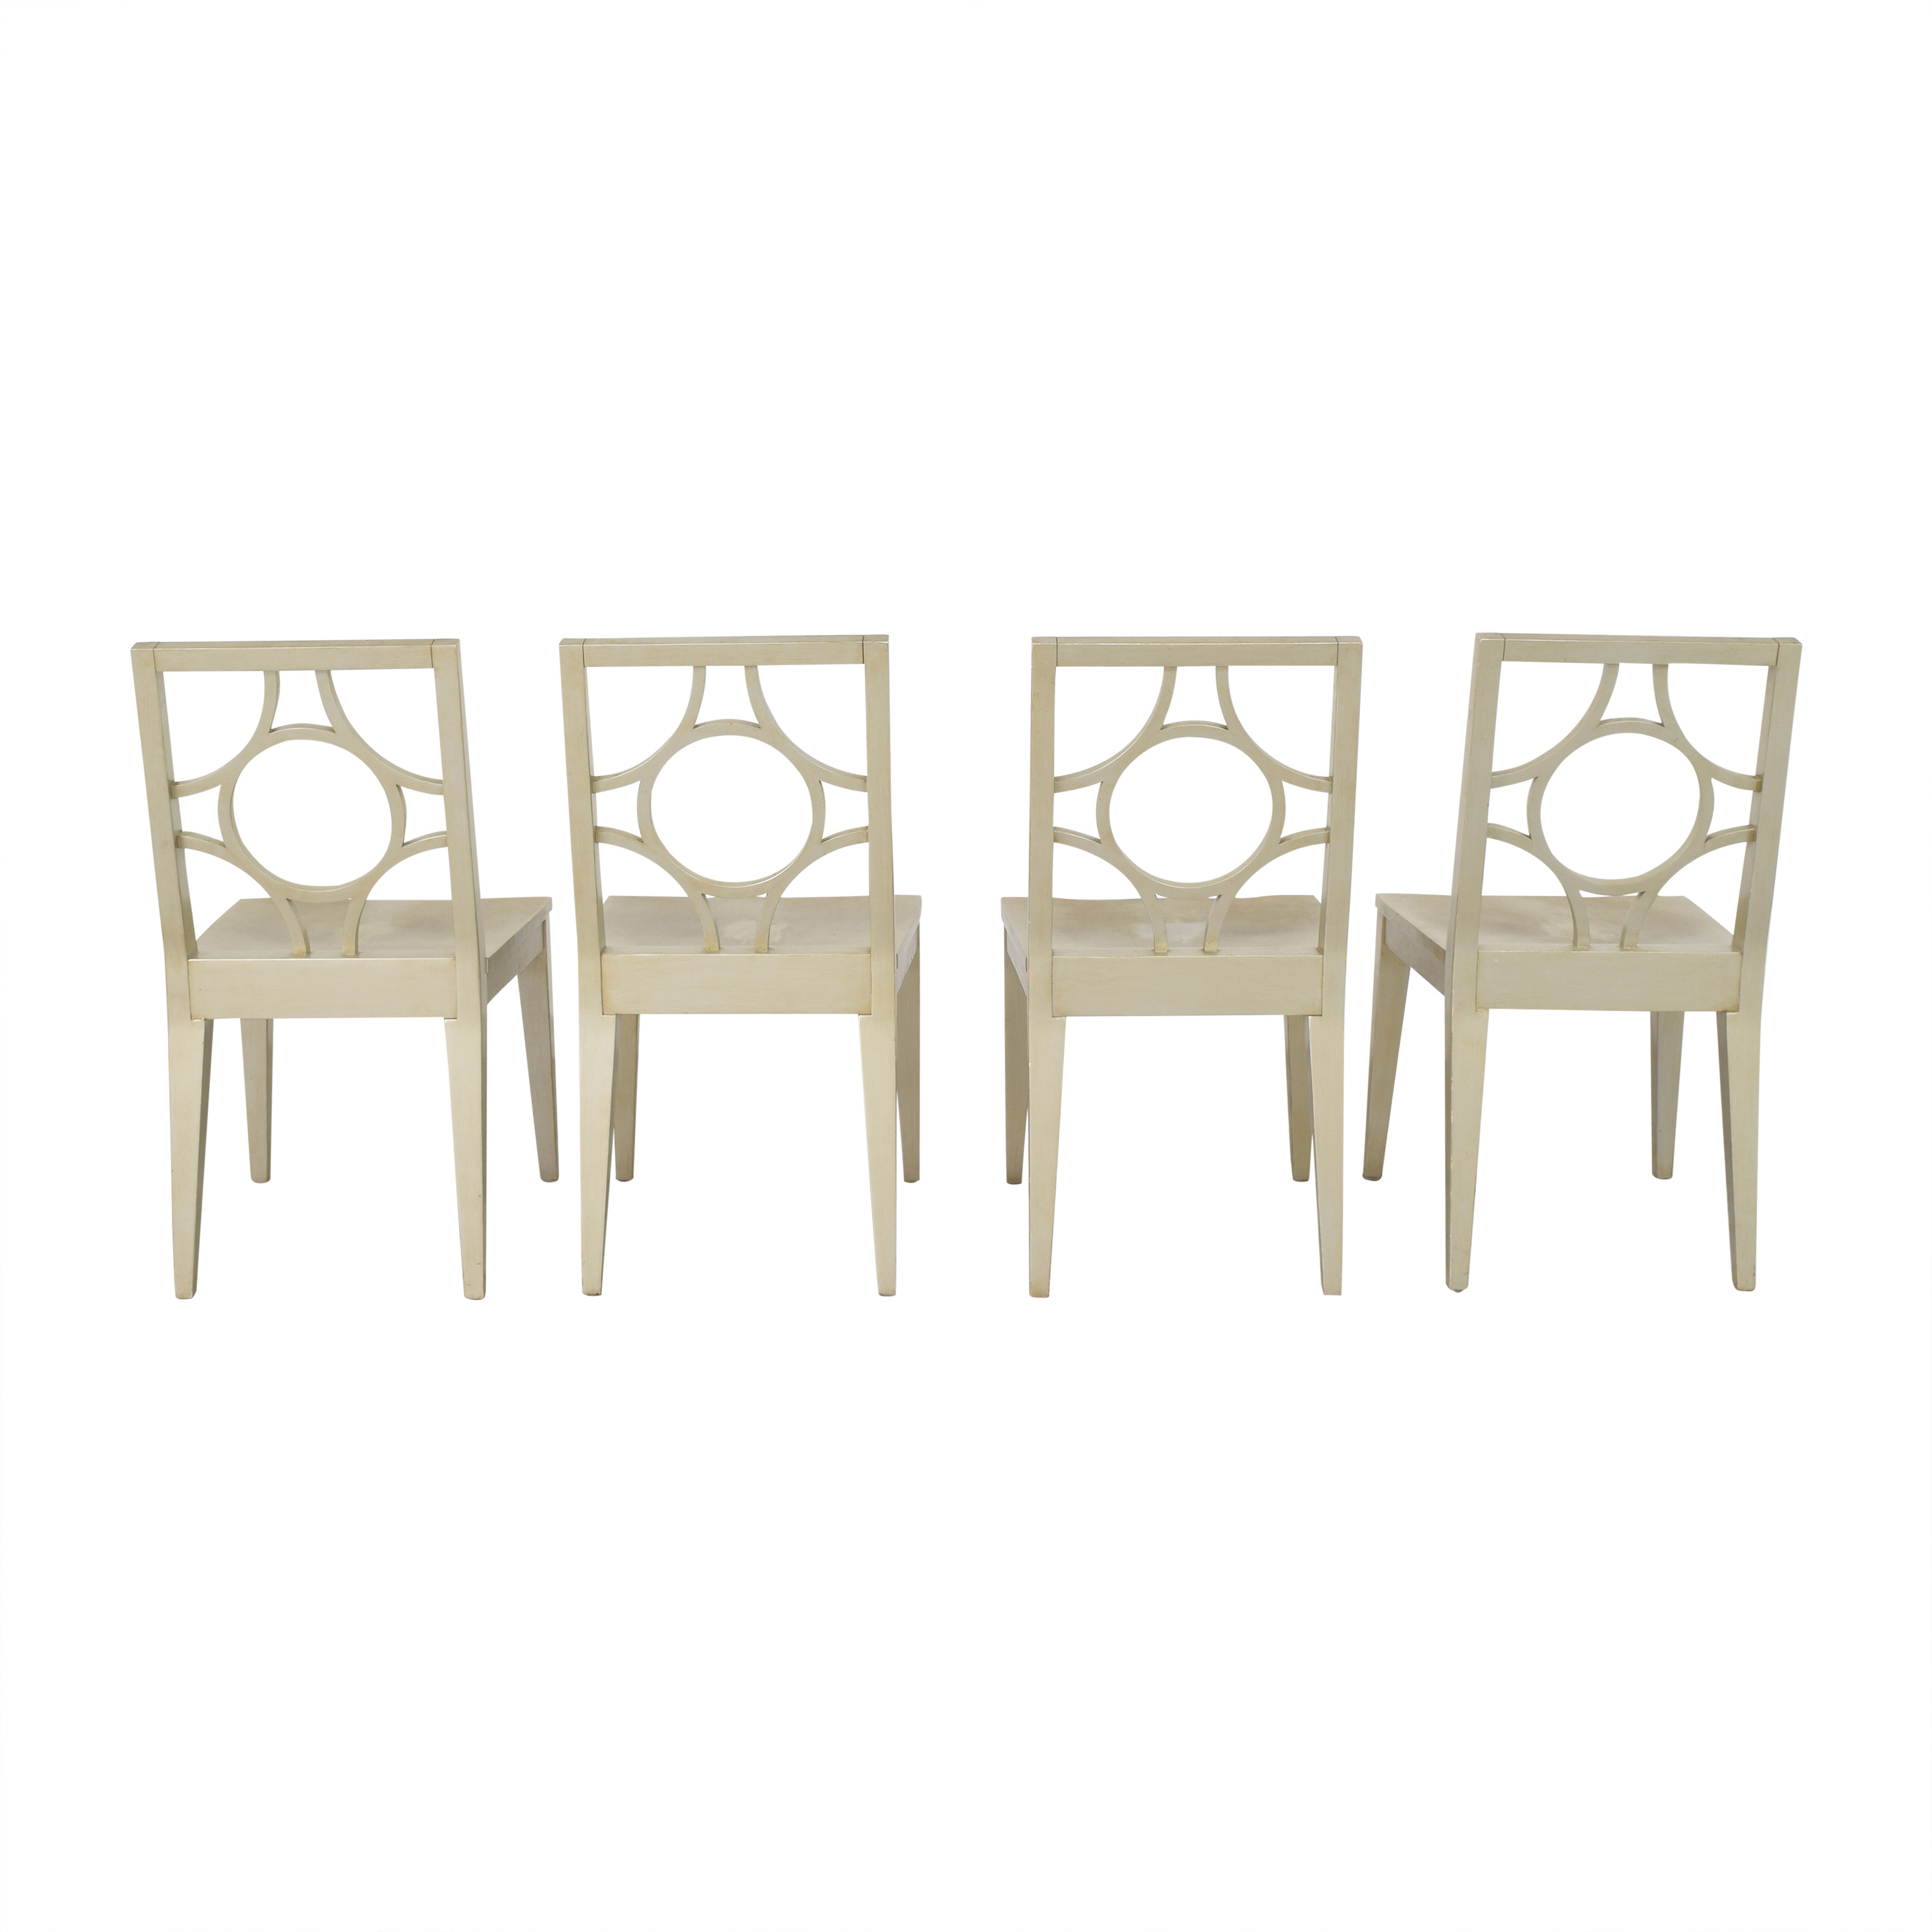 Crate & Barrel Crate & Barrel Dining Side Chairs second hand